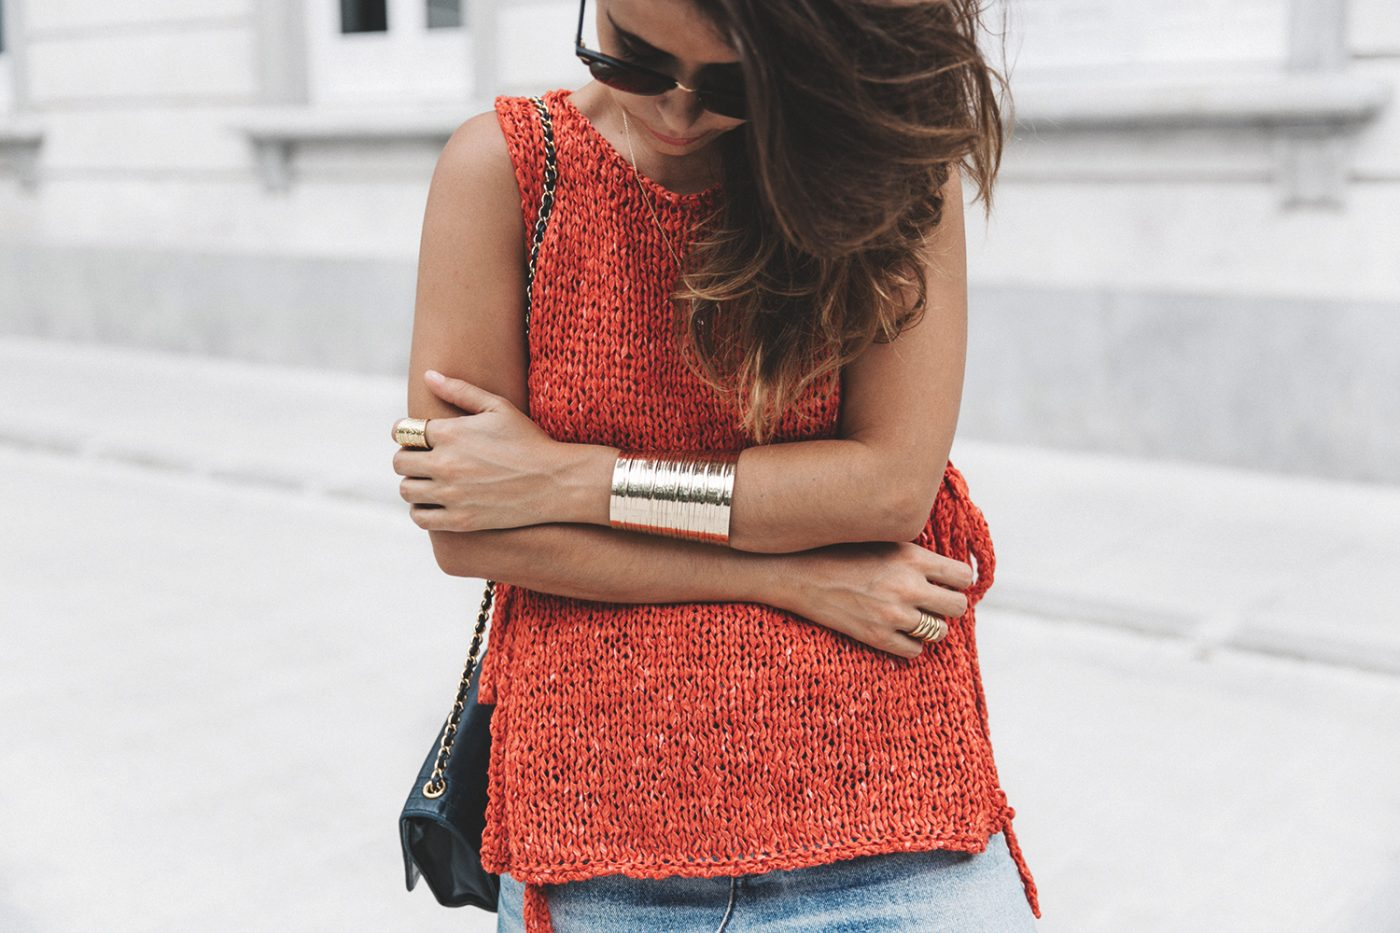 Summery_knit-Levis_Vintage_Skirt-Zalando_Espadrilles-Black_Sandals-Collage_Vintage_Horn_Necklace-Outfit-Street_Style-22